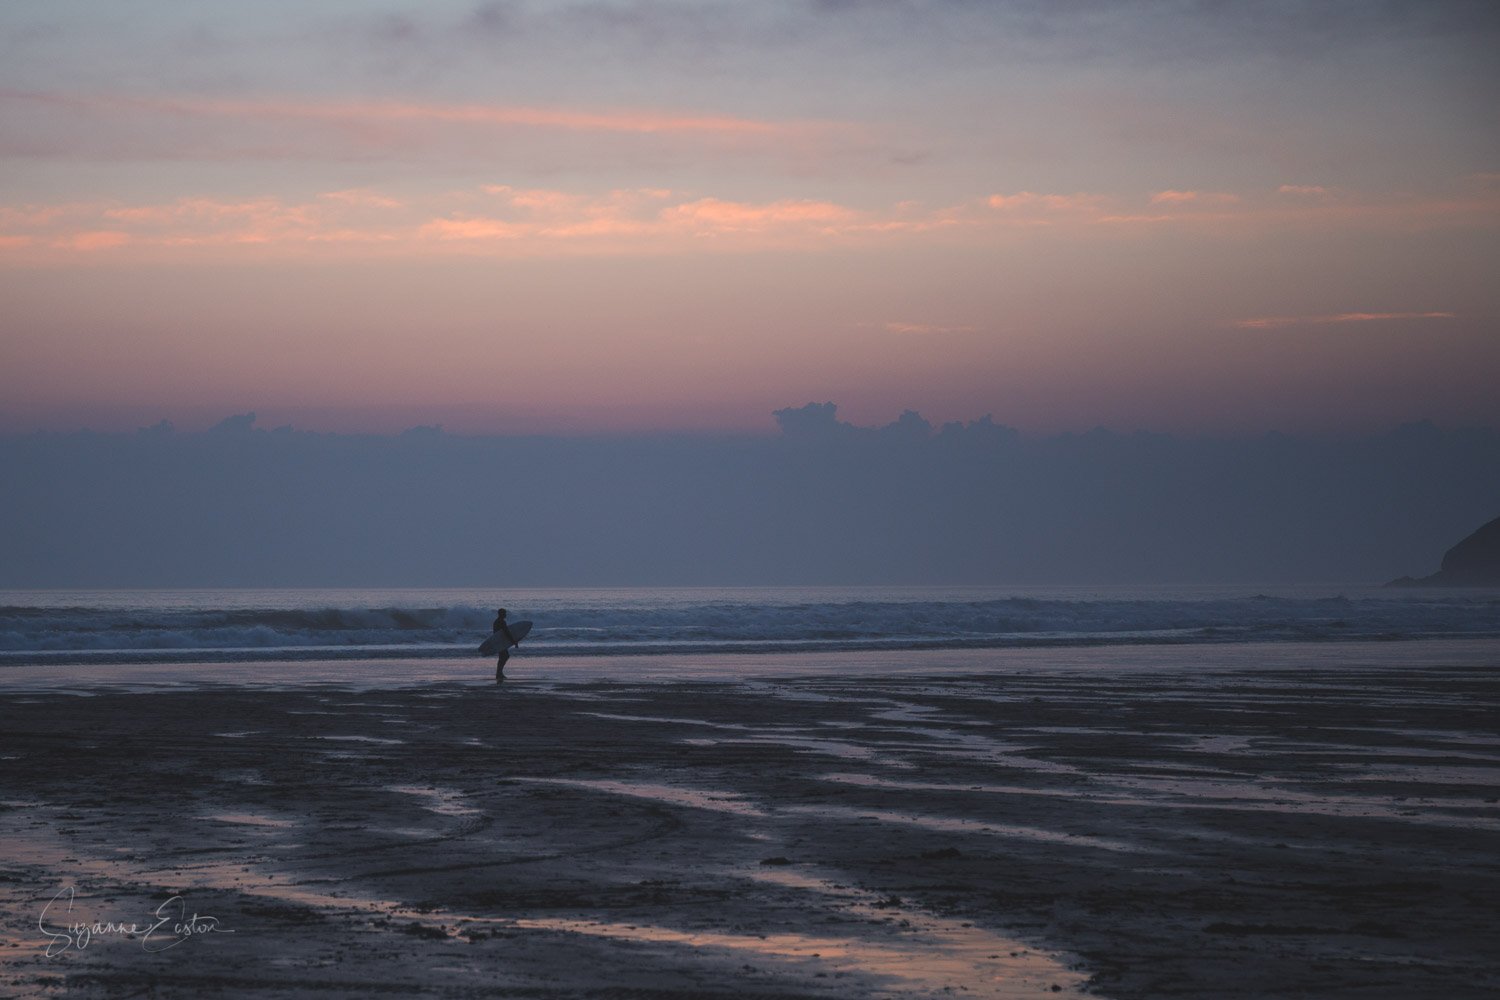 The end of the day at Croyde.  A surfer admiting defeat as he leaves the beach at sunset